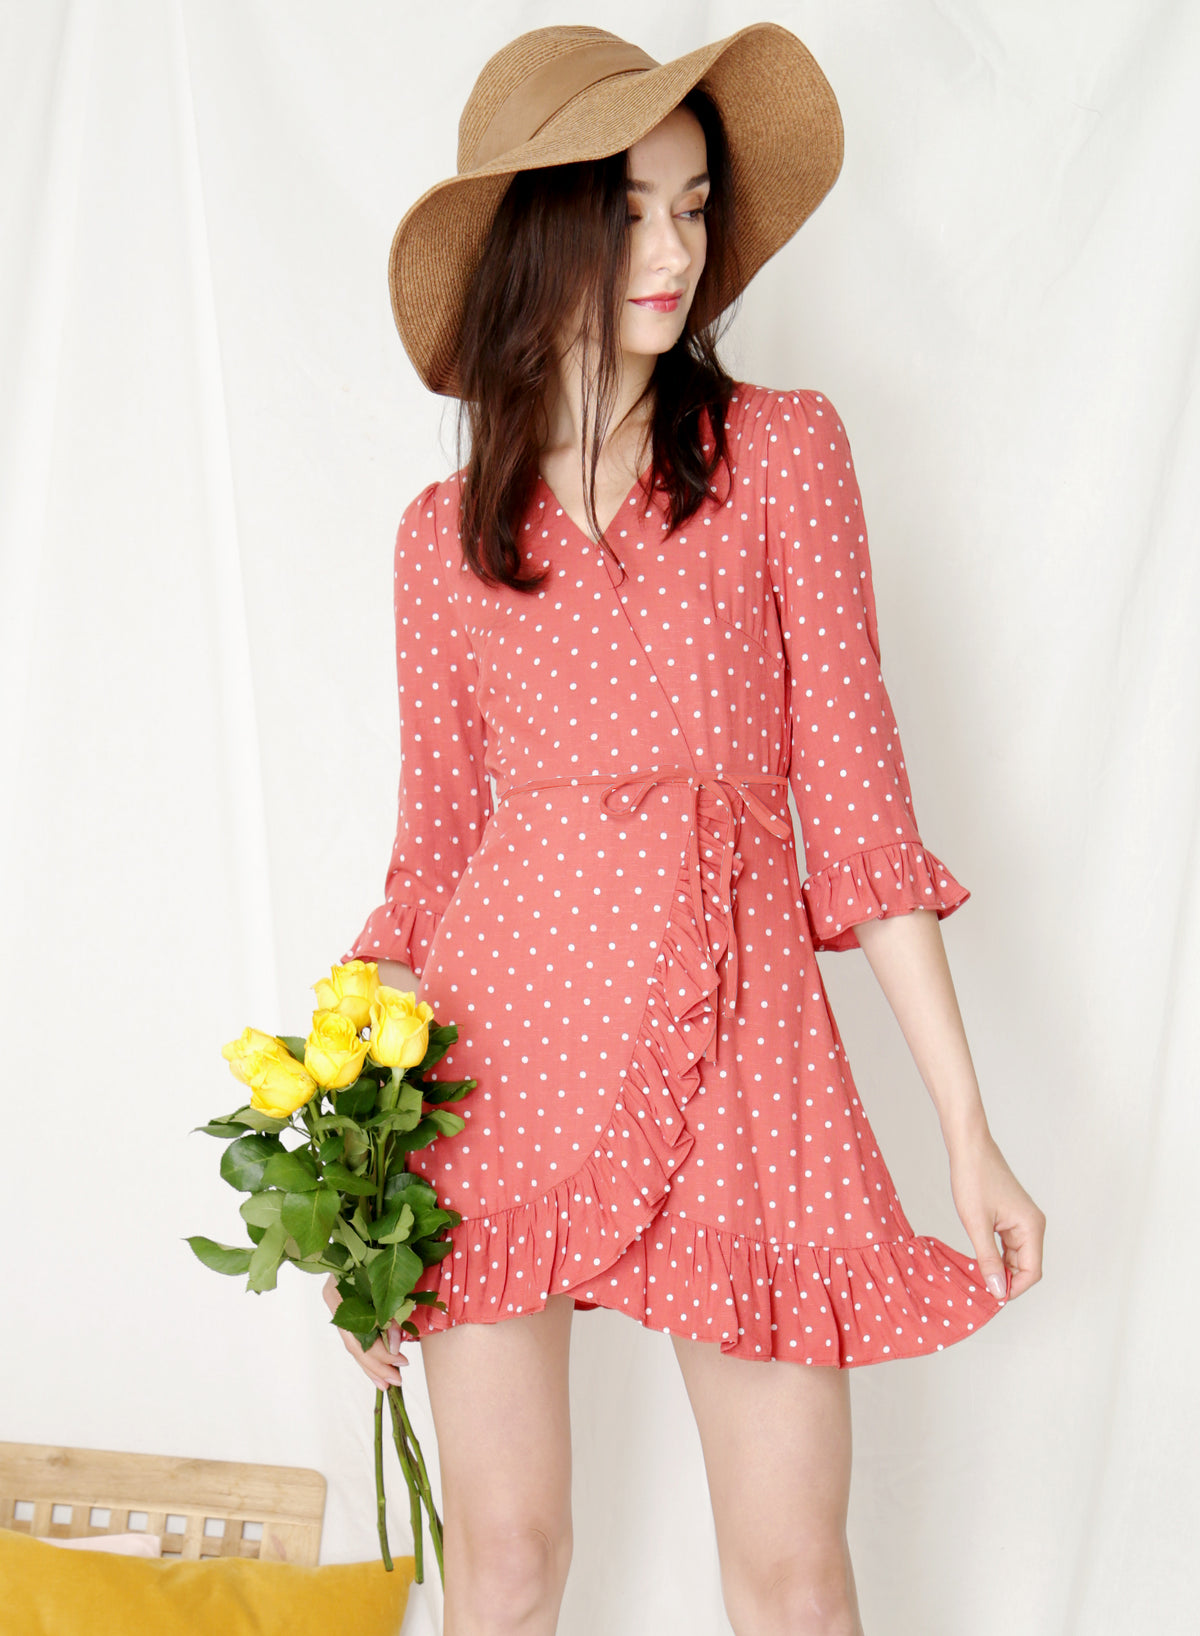 Treasure Ruffle Hem Wrap Dress (Rose Polka) at $ 42.90 only sold at And Well Dressed Online Fashion Store Singapore